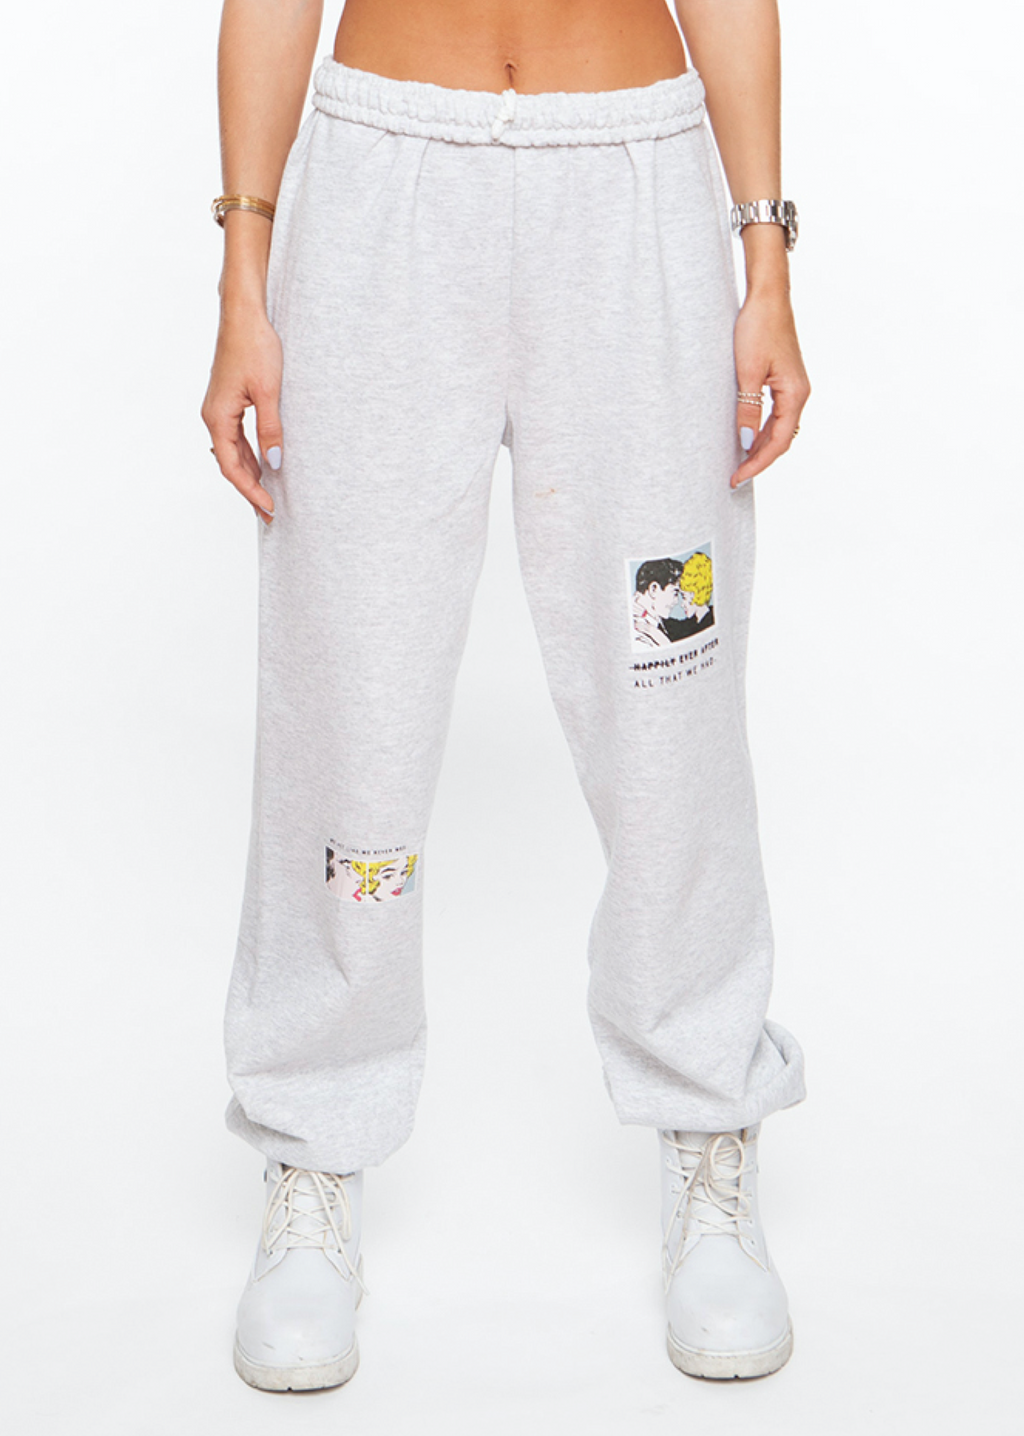 Boys Lie Ever After Sweatpants - Rock N Rags